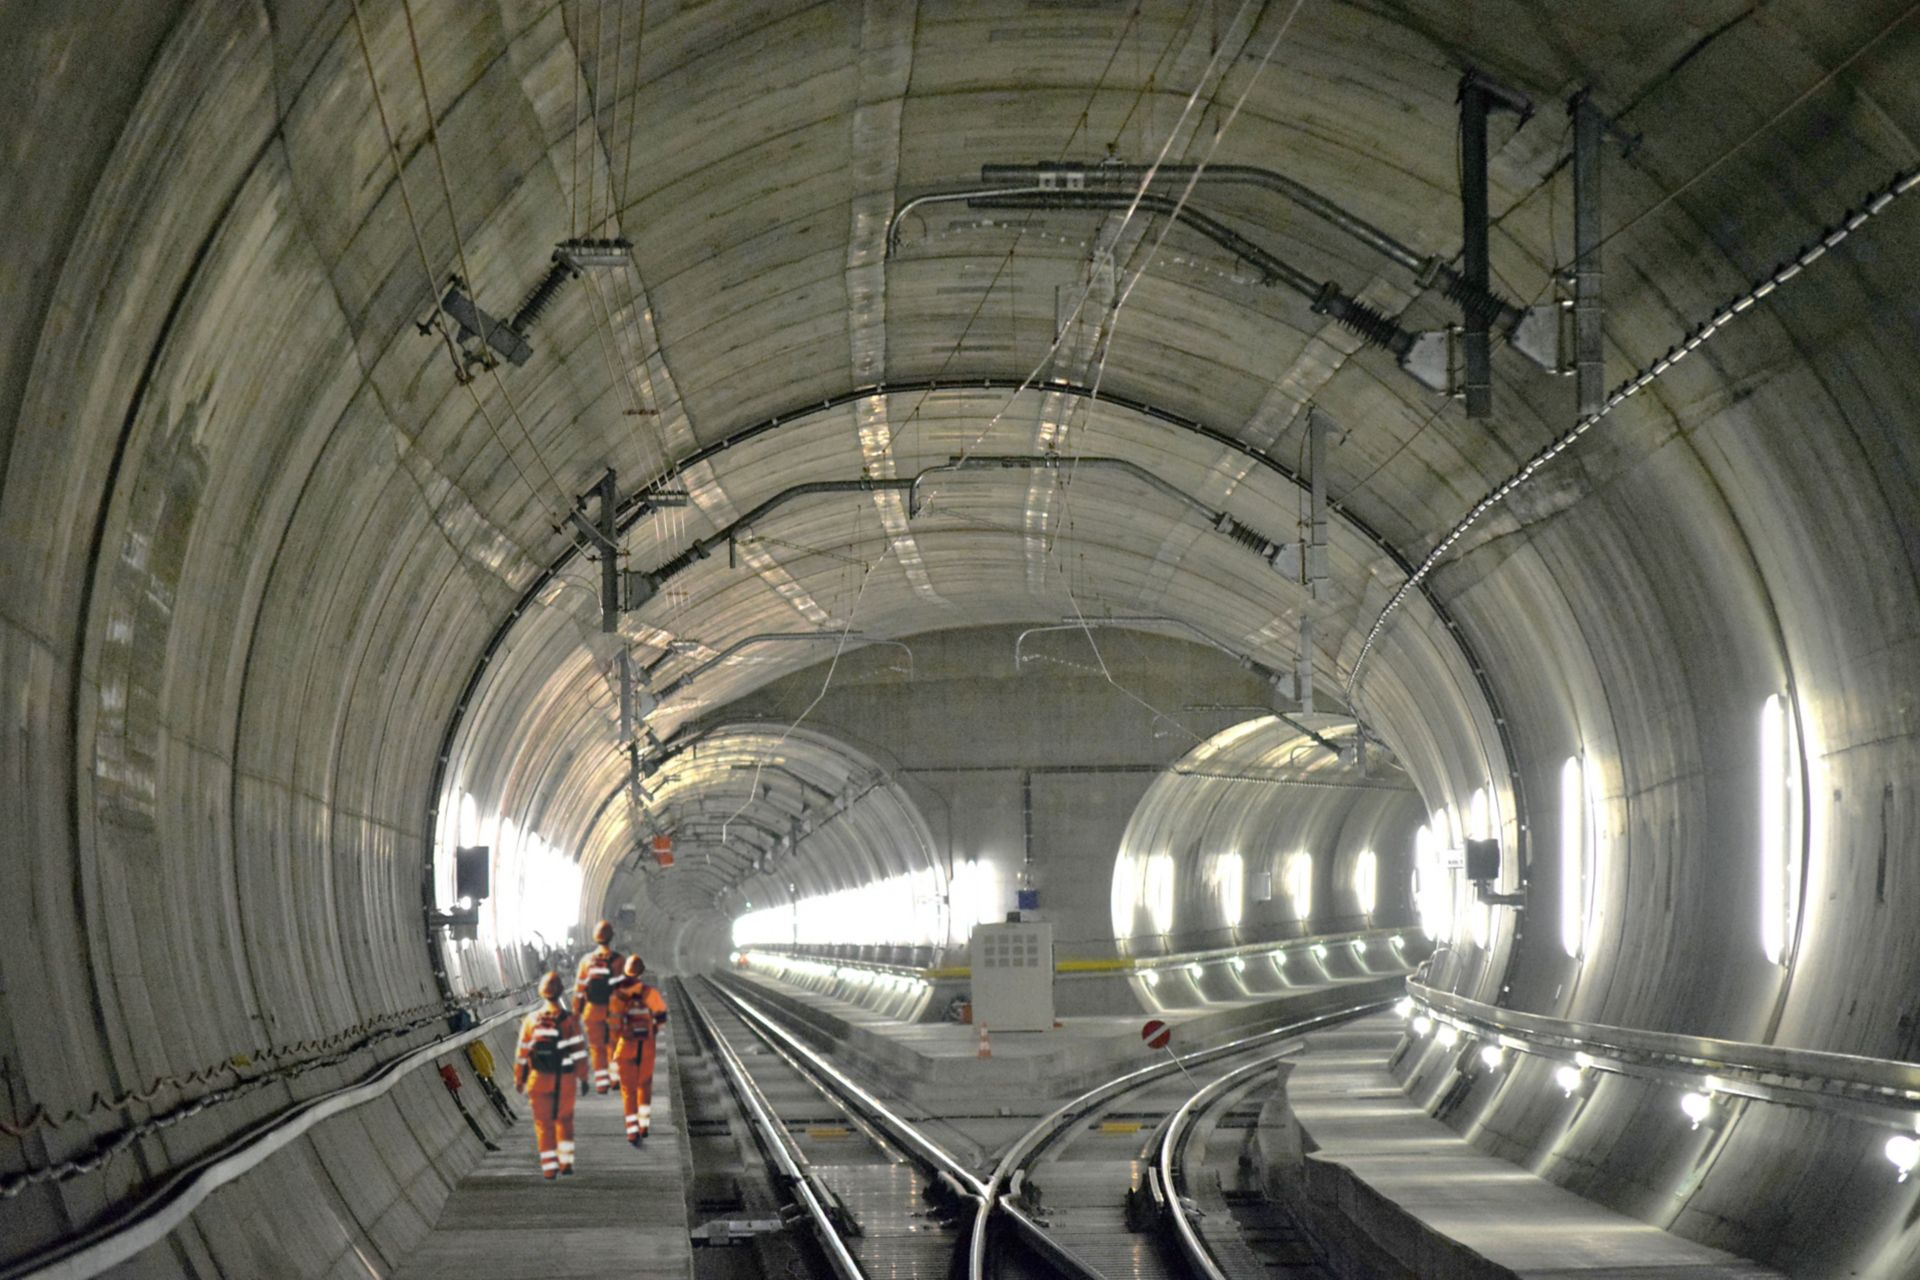 Construction workers walking inside Gotthard Tunnel in Switzerland